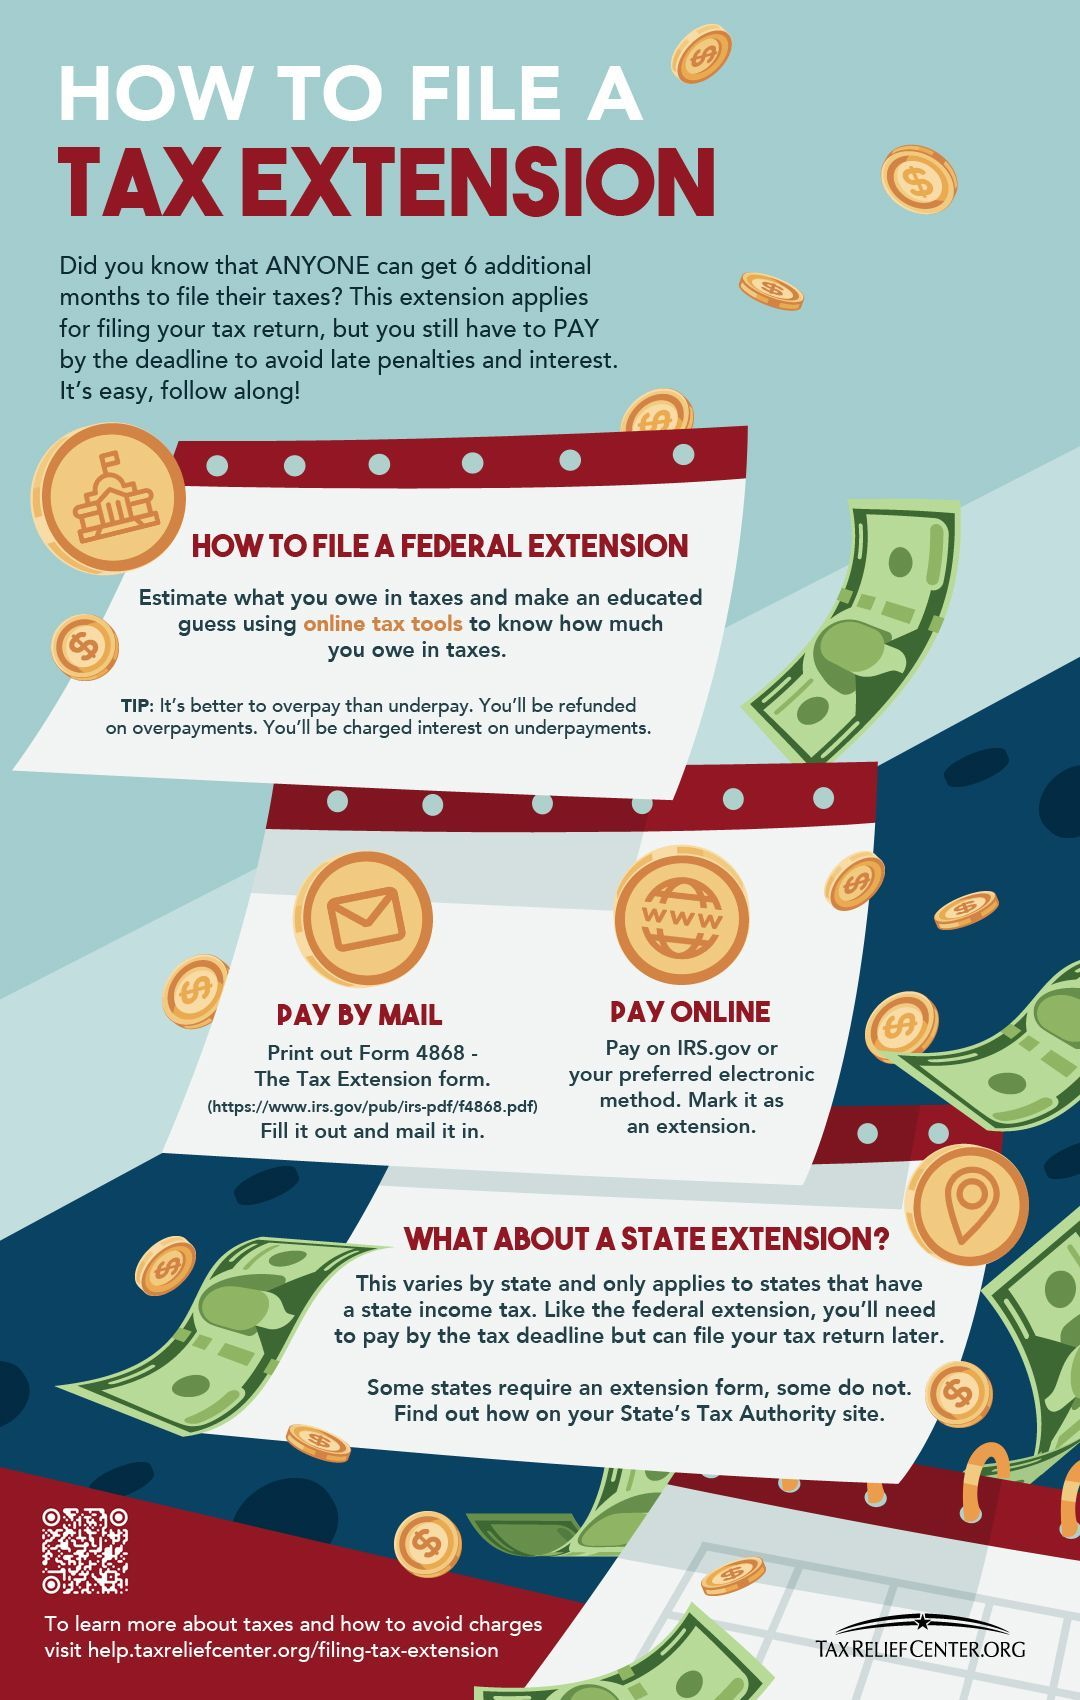 53e2a2fdacf02ba60ebb28a3d93de1ad - How To Get An Extension On Paying State Taxes